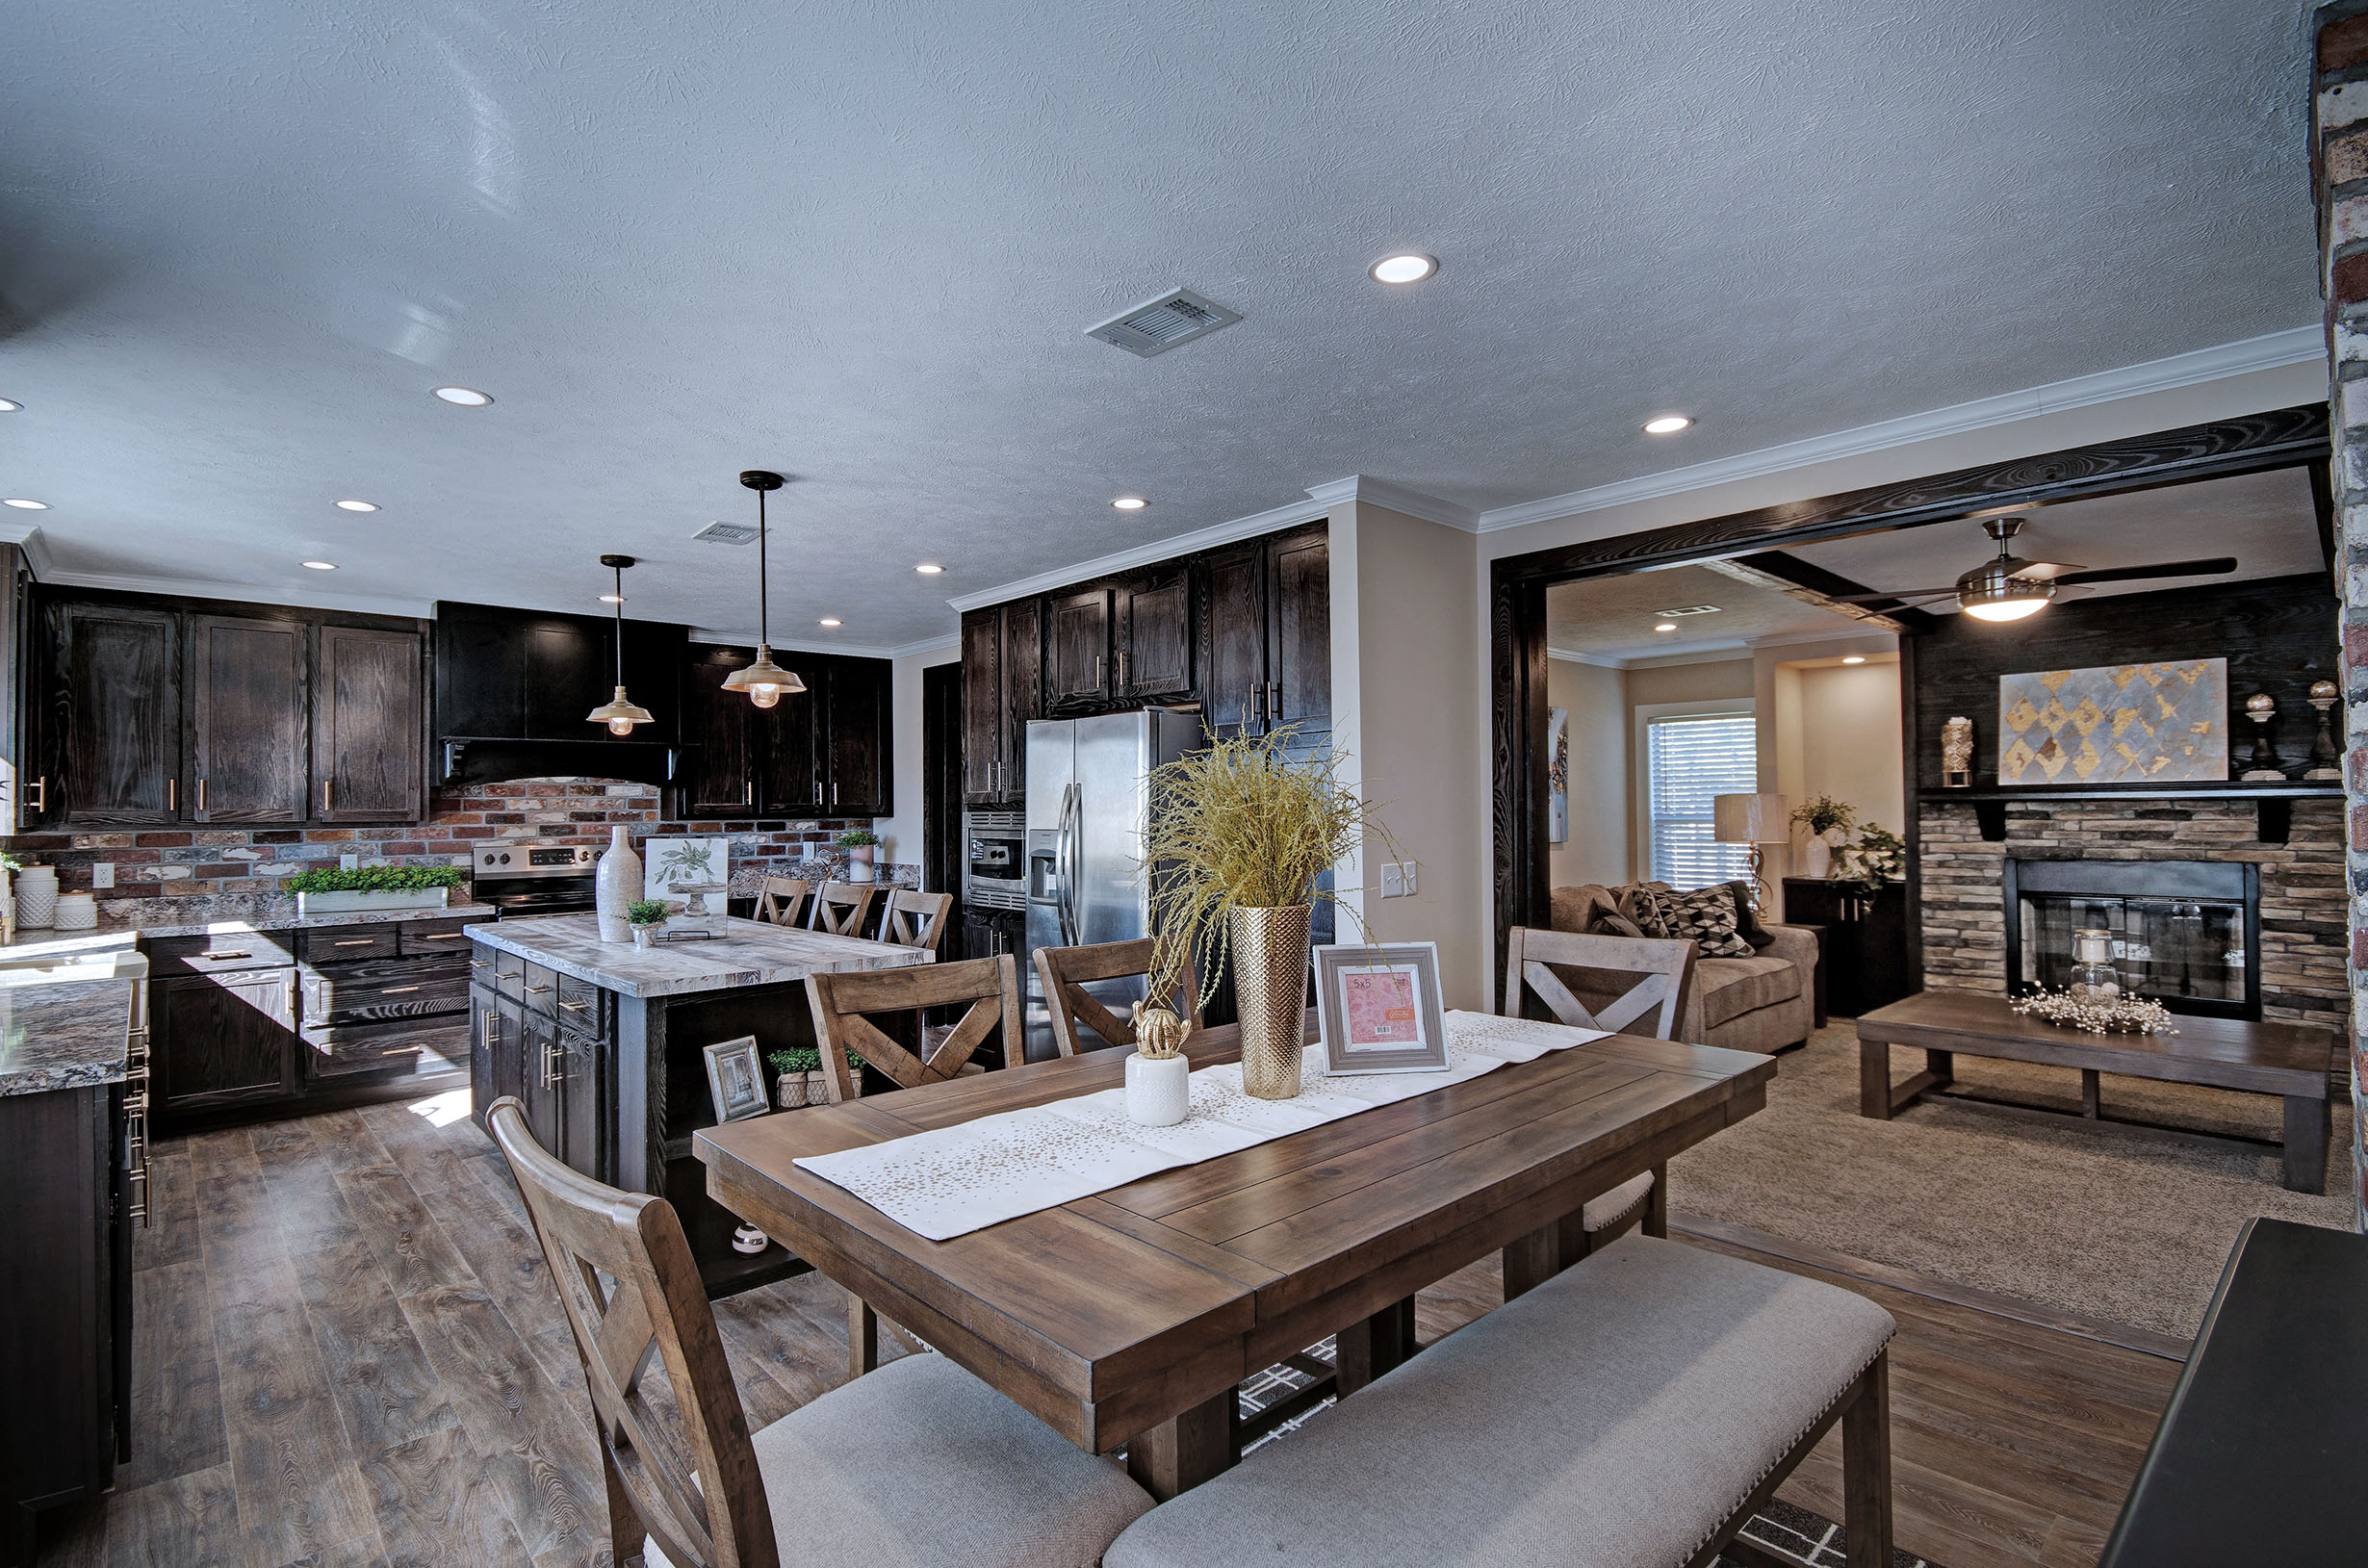 The Stoney Pointe Kitchen by Winston Homebuilders